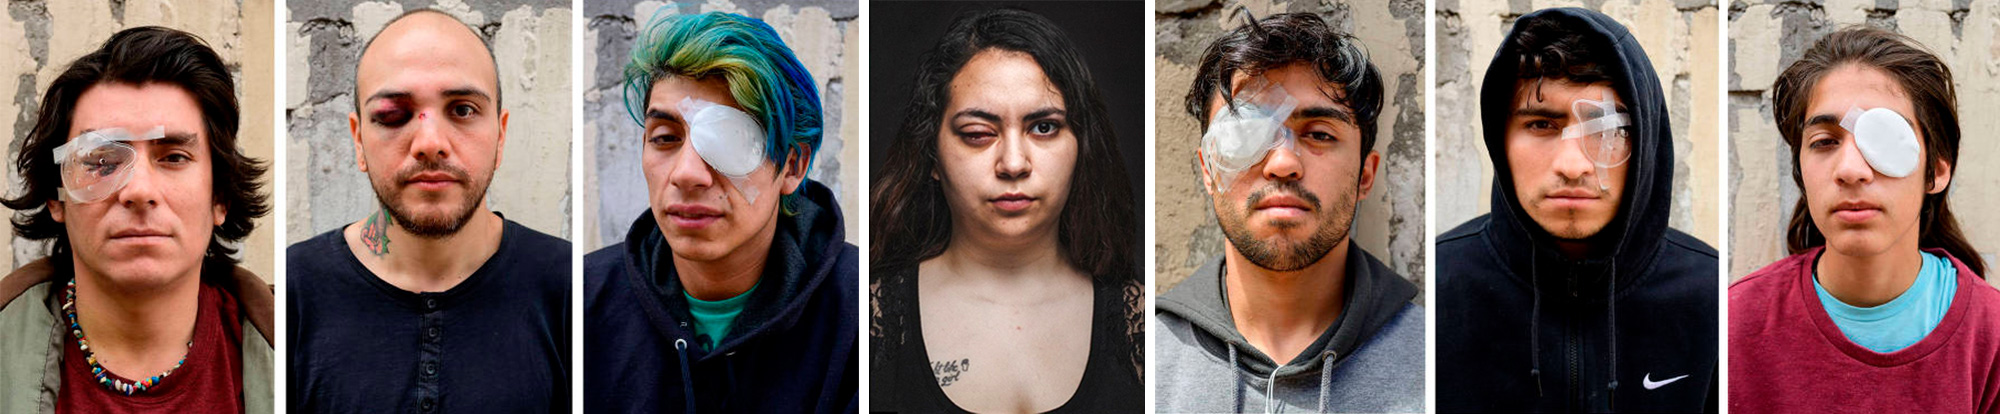 Seven portraits: one girl and six guys with their eye mutilated